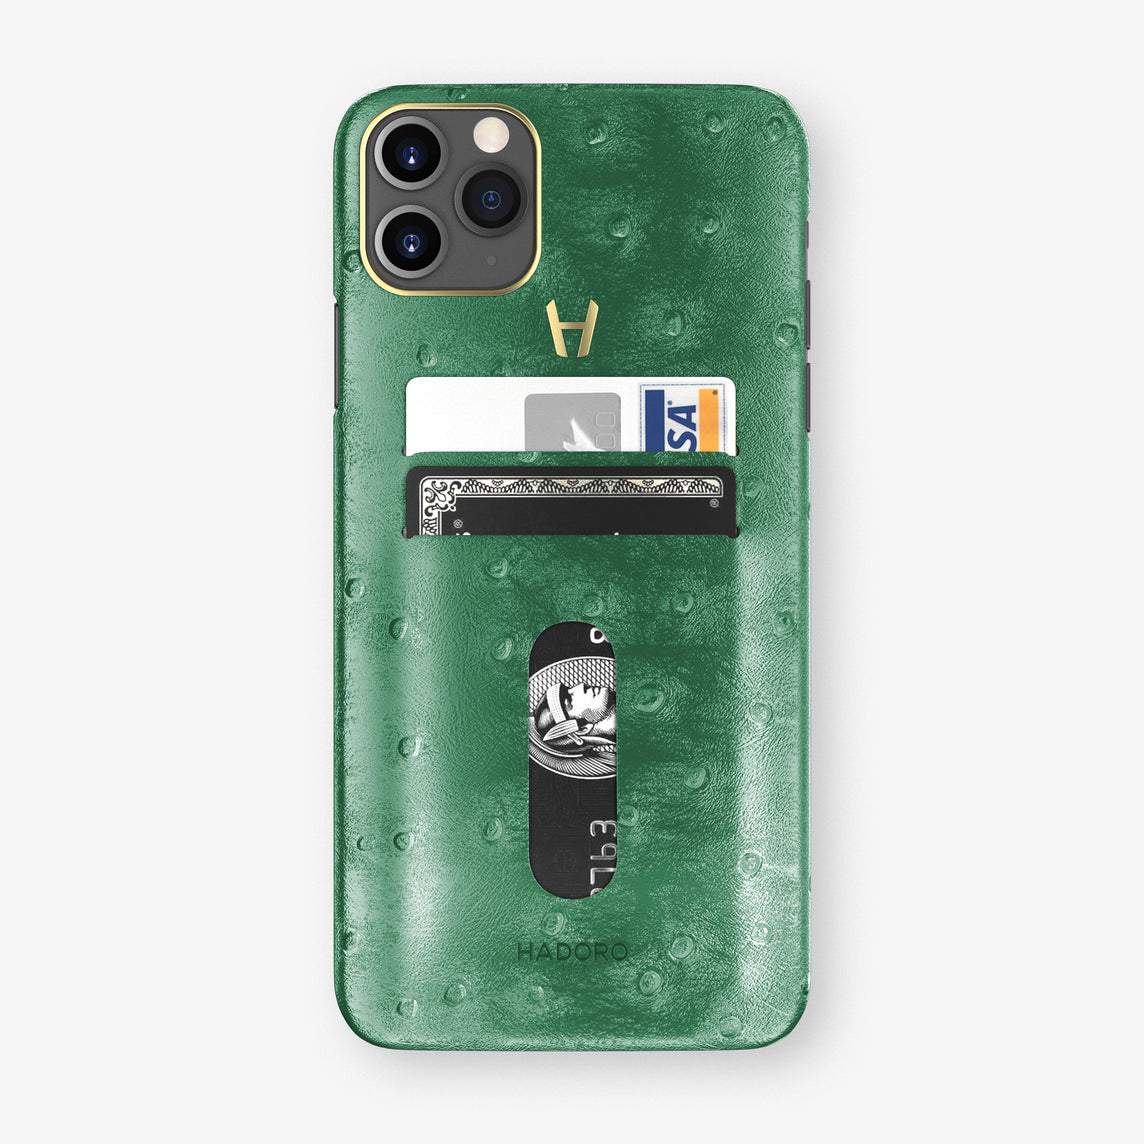 Ostrich Card Holder Case iPhone 11 Pro Max | Green - Yellow Gold